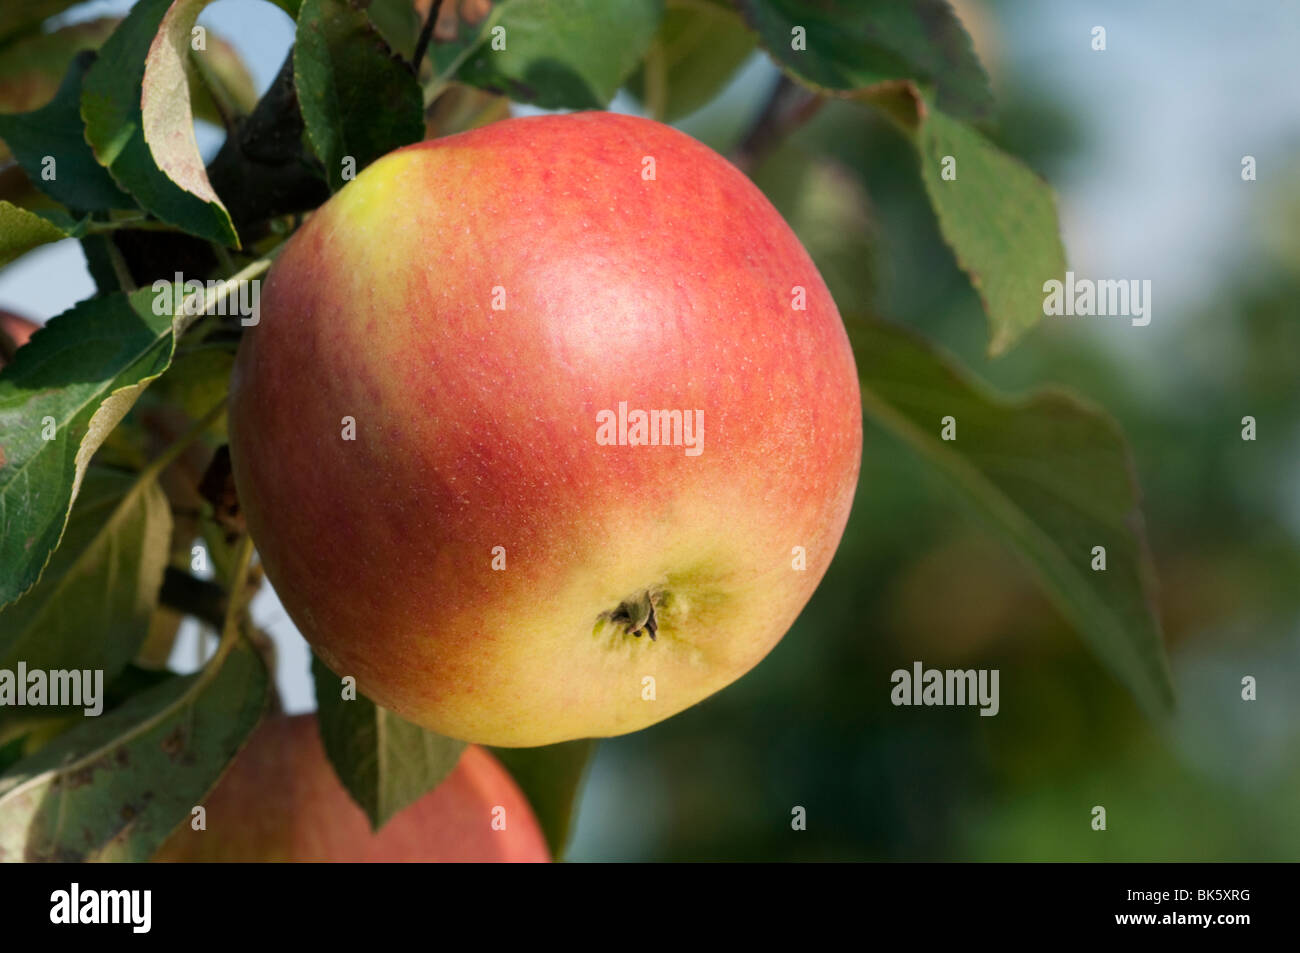 Domestic Apple (Malus domestica), variety: American Mother, The Mother, apples on a tree. - Stock Image